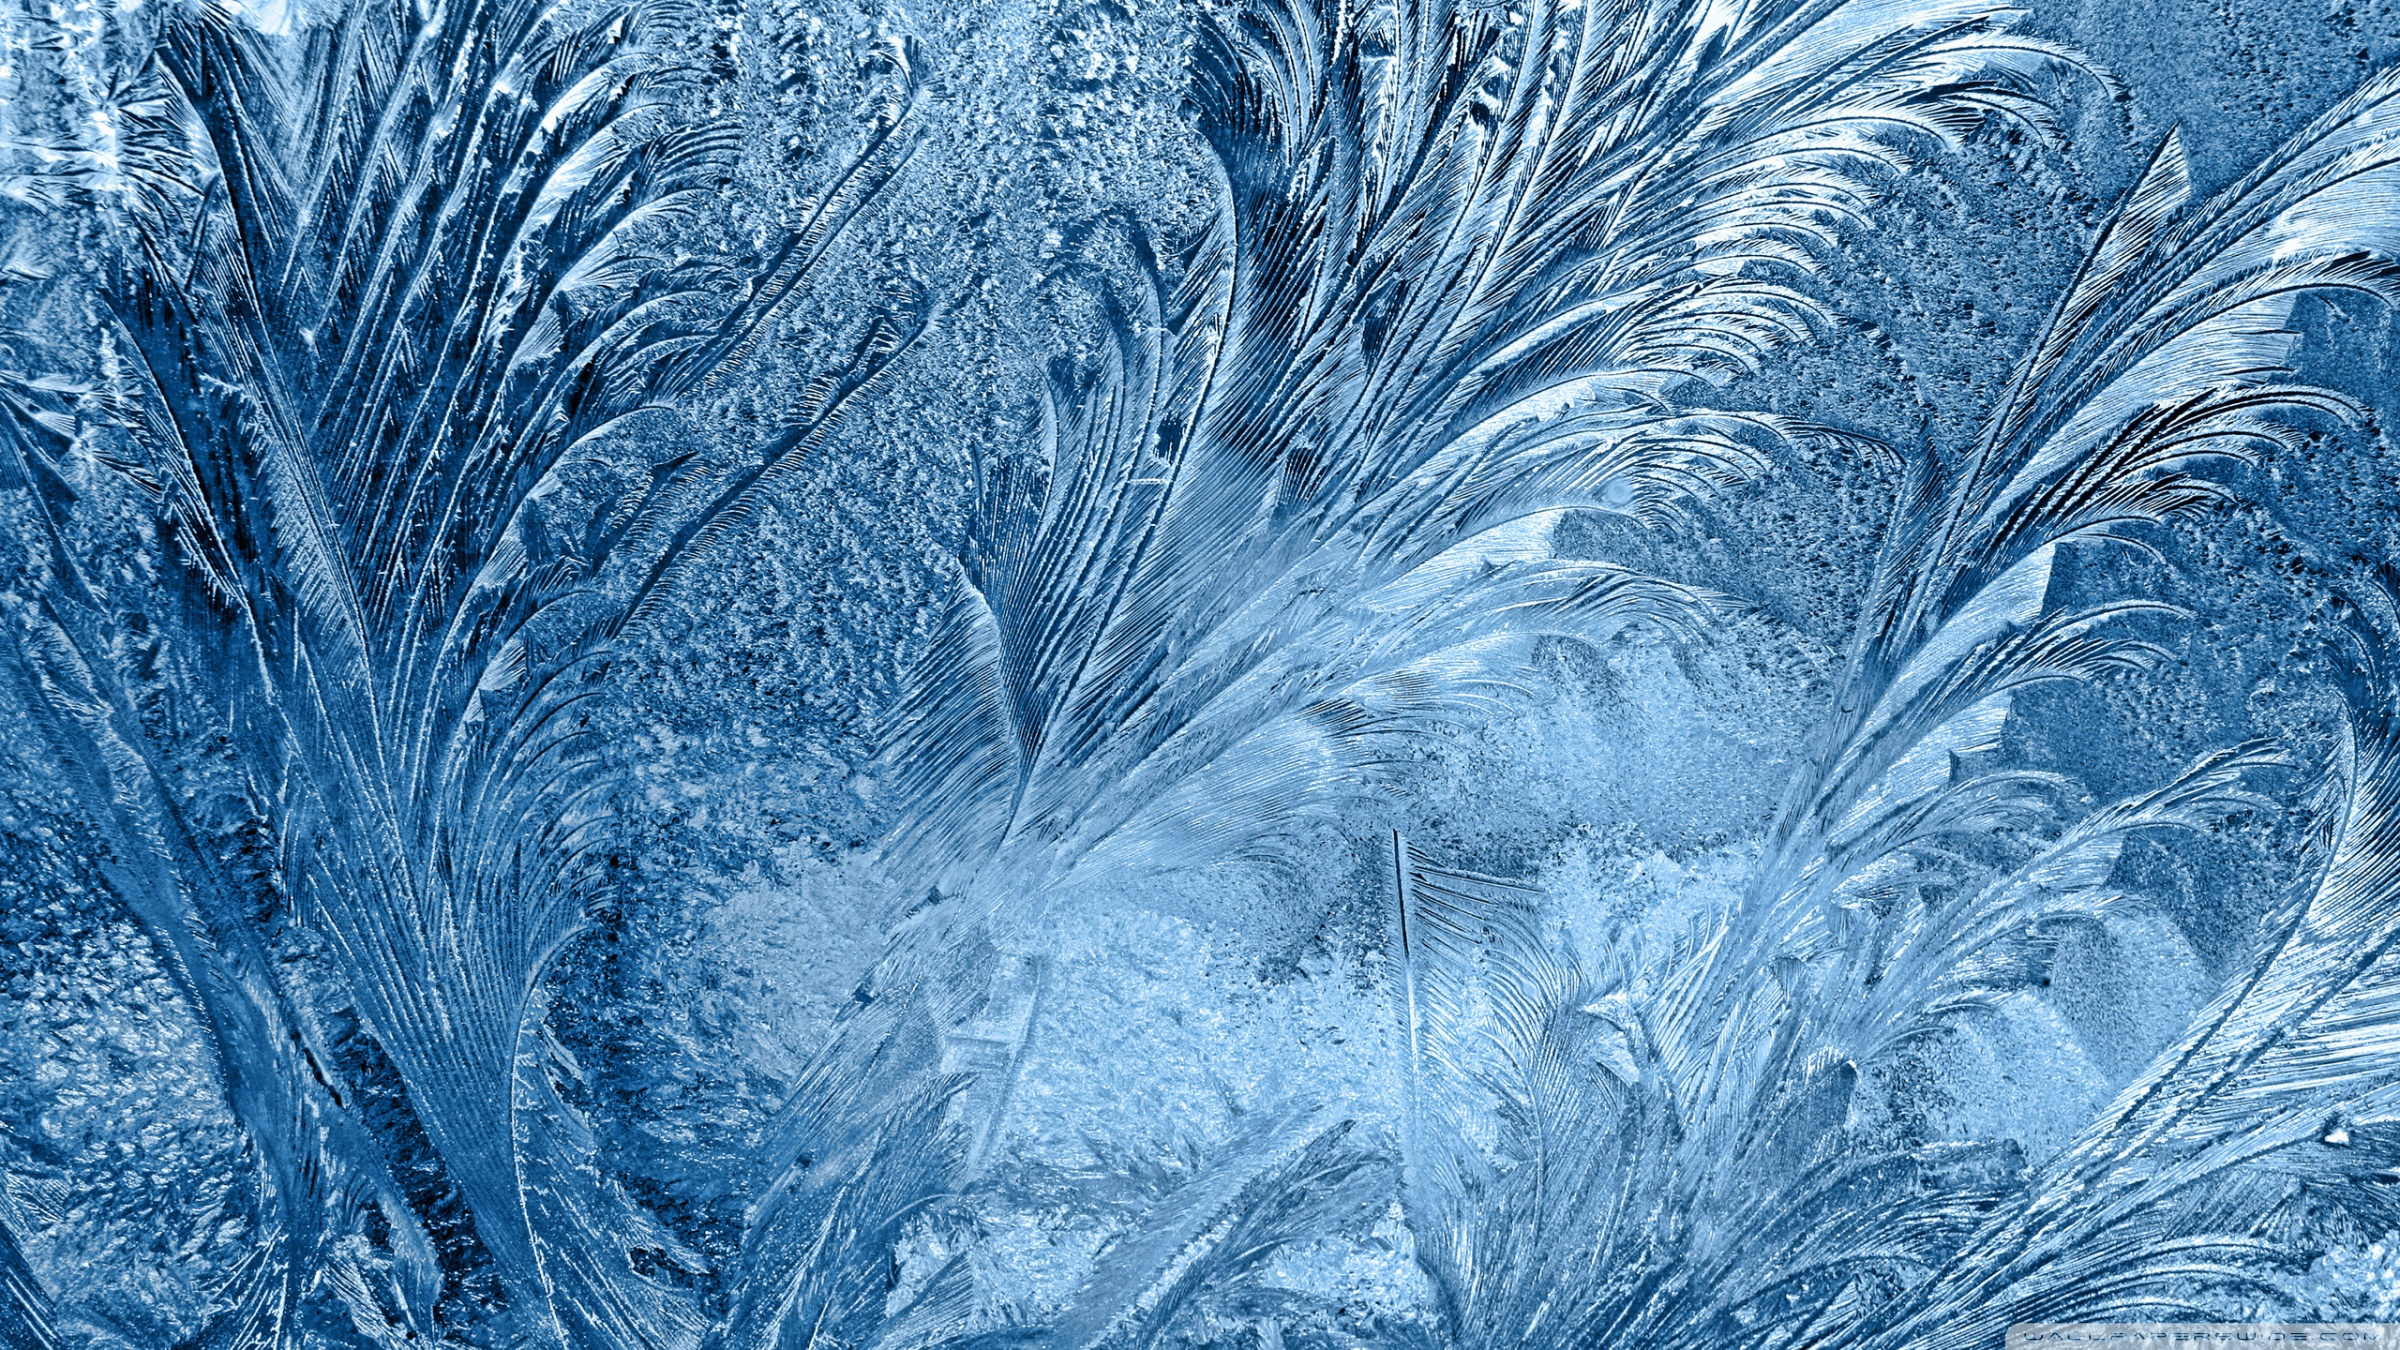 Frozen Glass Wallpaper